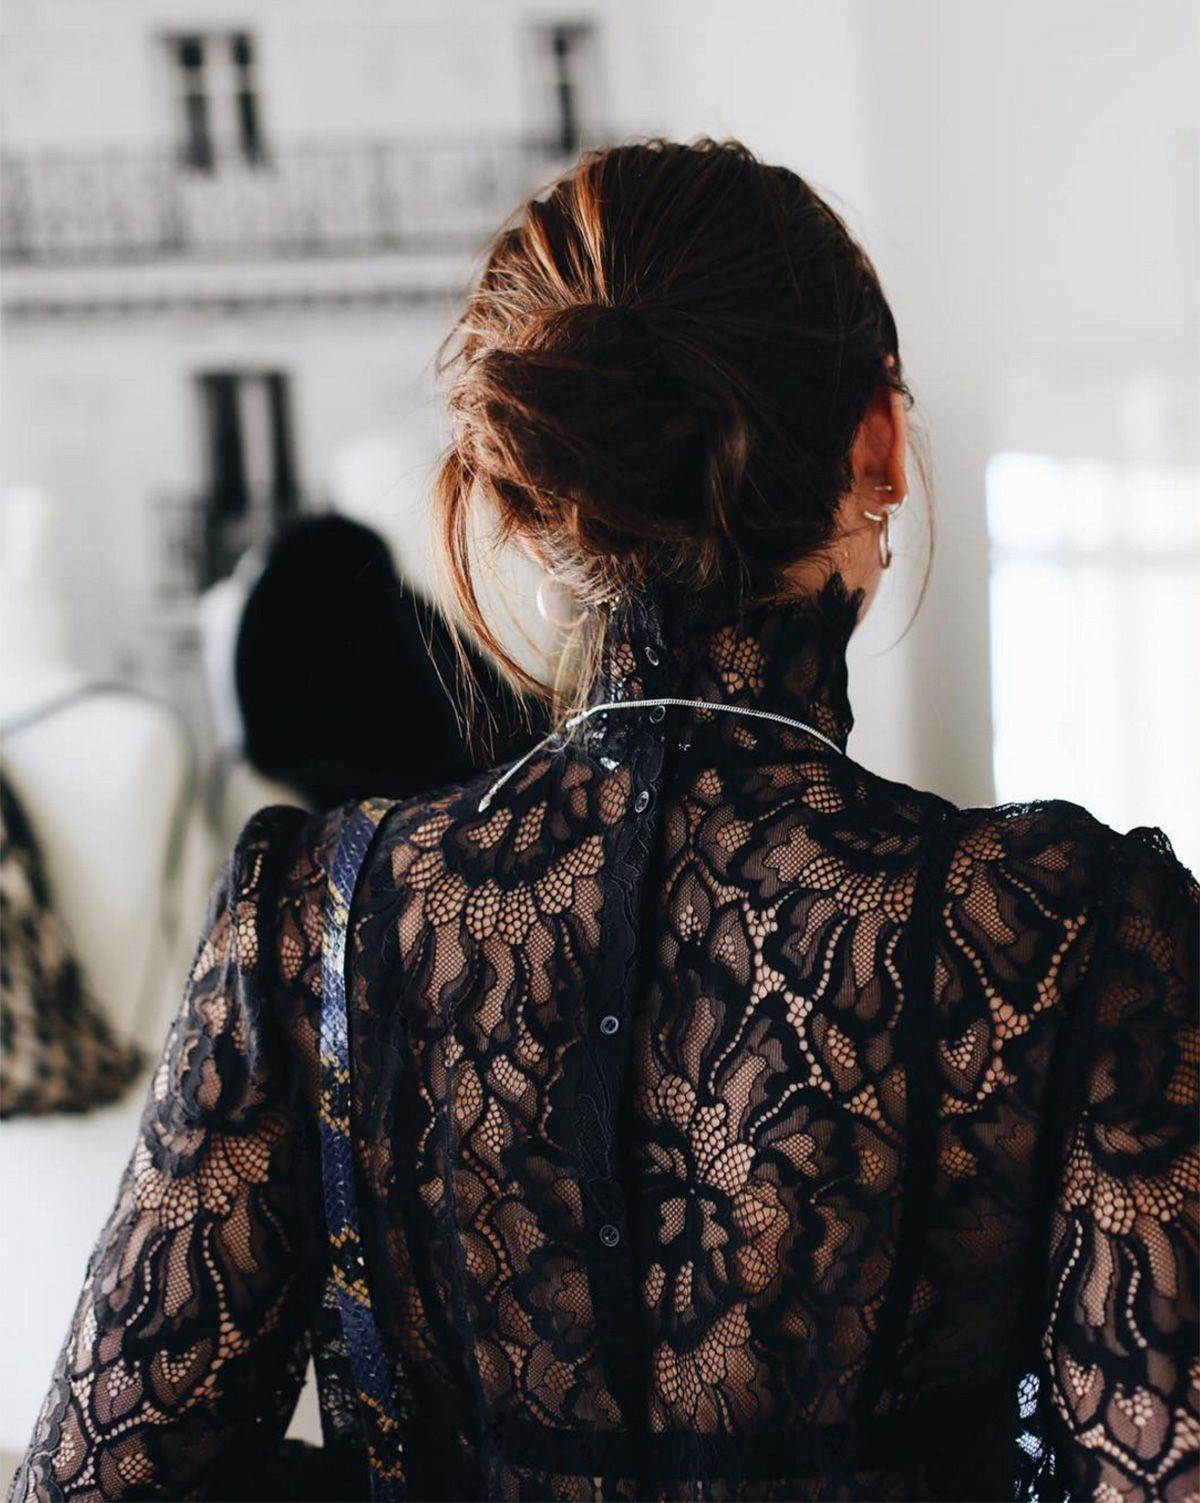 """<p><strong>The Loose Midi</strong></p> <p>If top knots aren't for you and a low chignon feels too mature, try a slightly <span>dishevelled mid bun a la model and singer <a href=""""https://www.instagram.com/natalieoffduty/"""" rel=""""nofollow noopener"""" target=""""_blank"""" data-ylk=""""slk:Natalie Suarez"""" class=""""link rapid-noclick-resp"""">Natalie Suarez</a>.</span></p> <span class=""""copyright"""">Photo: via @natalieoffduty.</span>"""